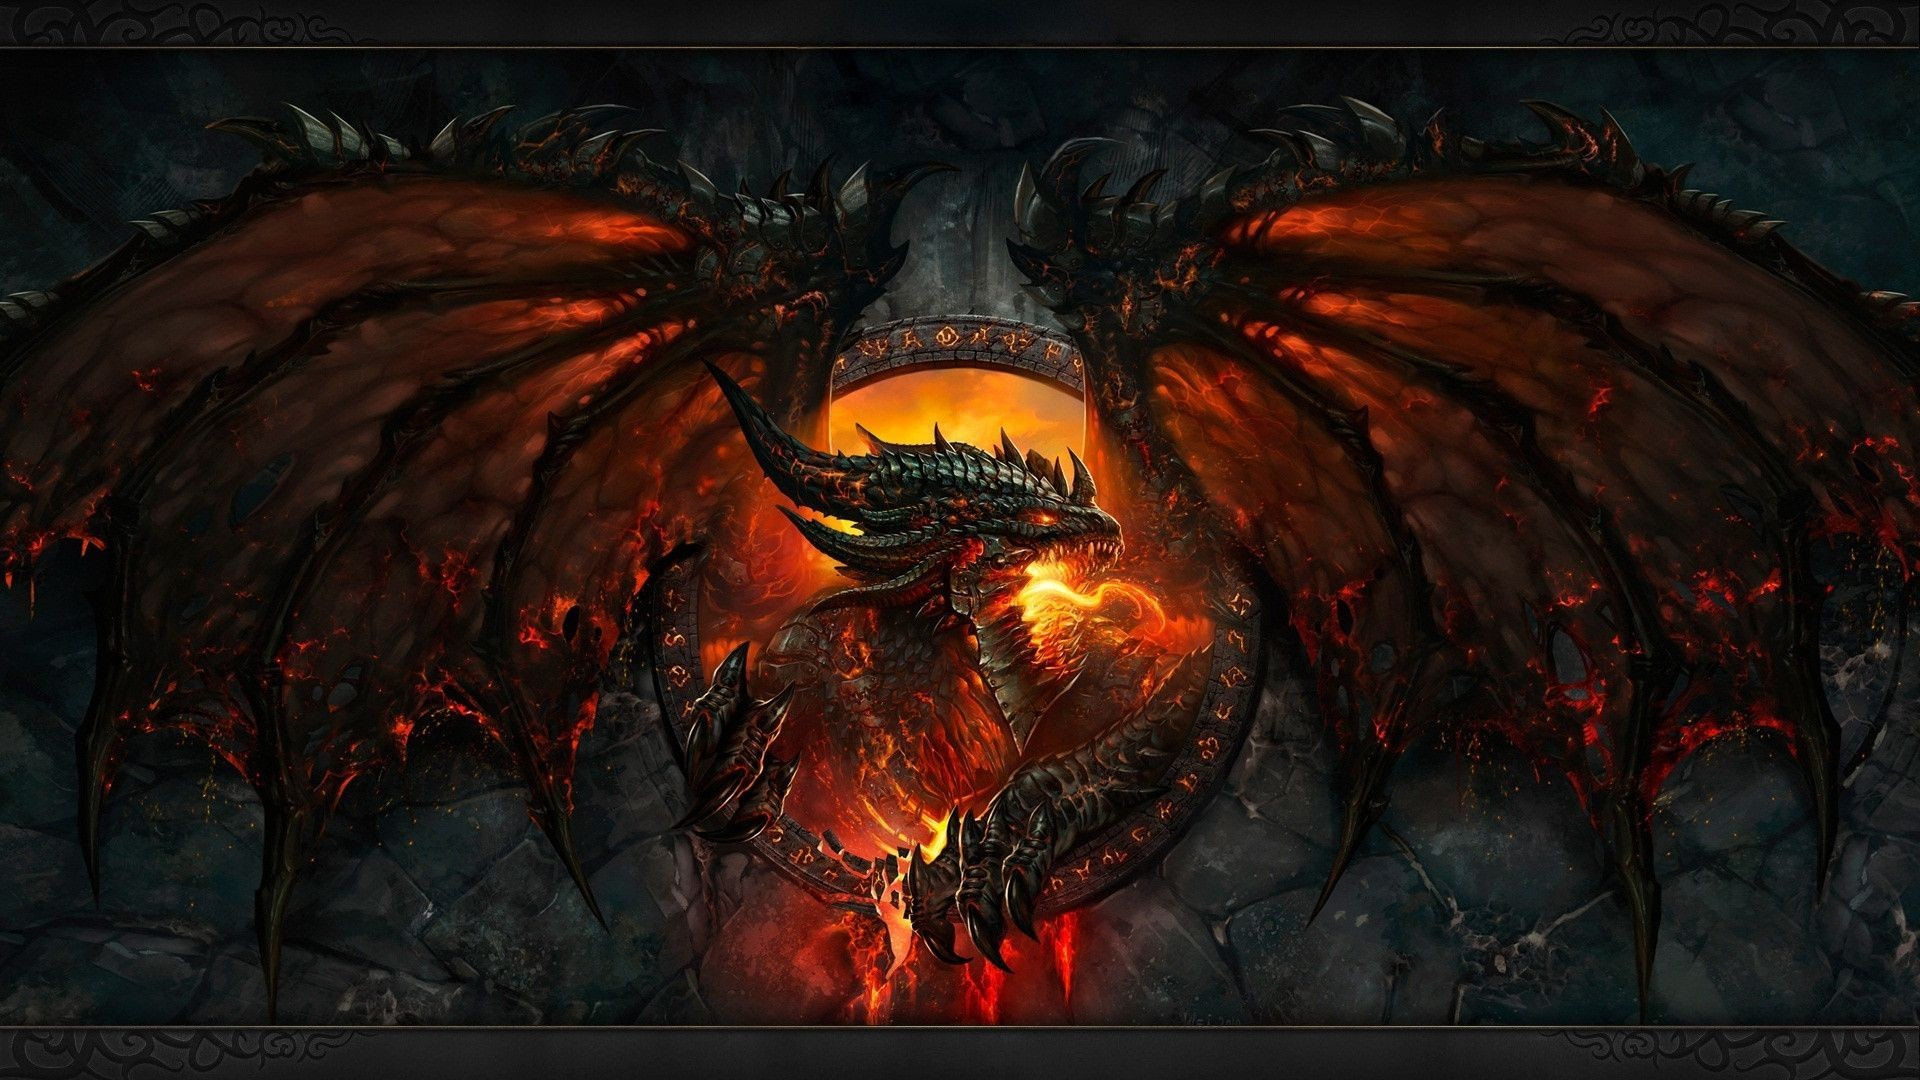 Fire Dragon wallpapers 1080p